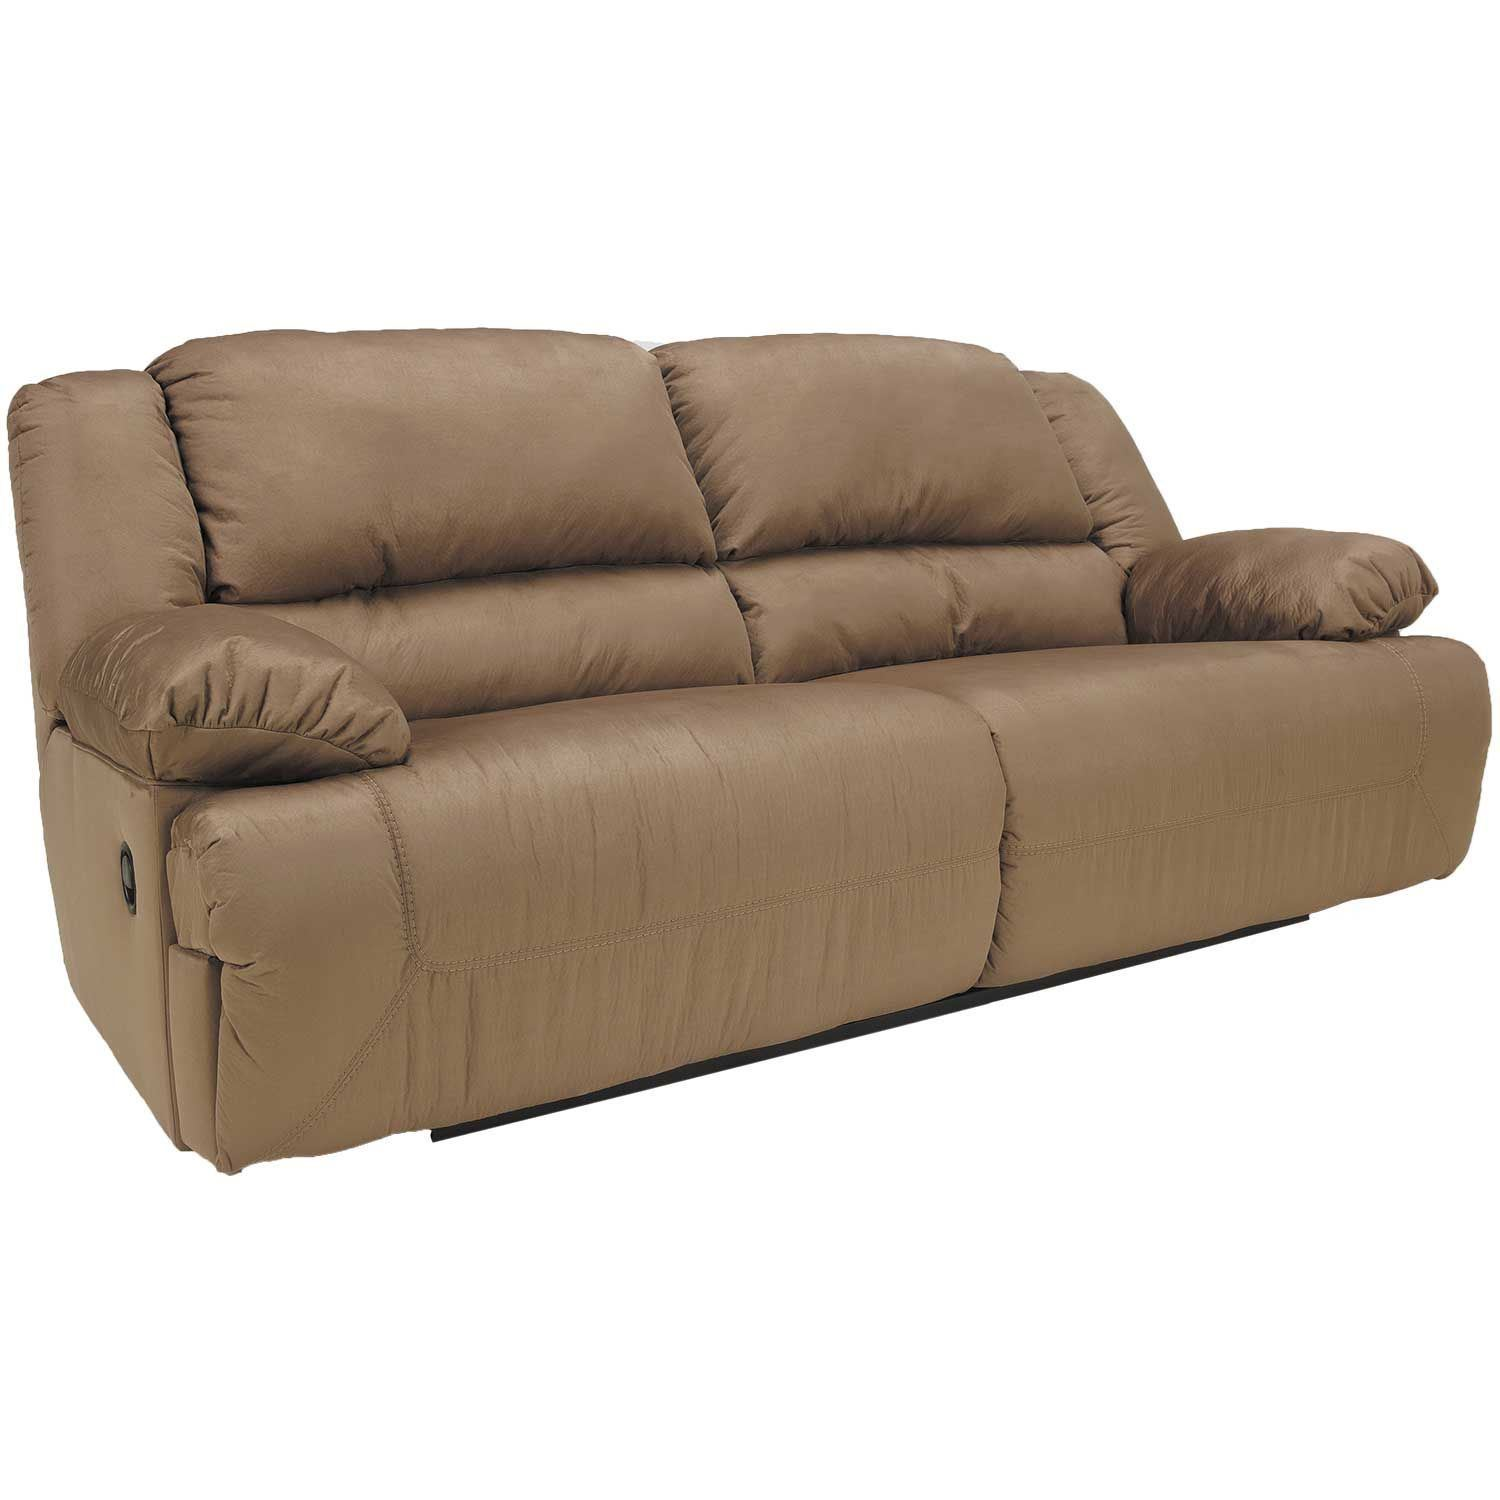 Picture Of Hogan Mocha Motion Recliner Sofa